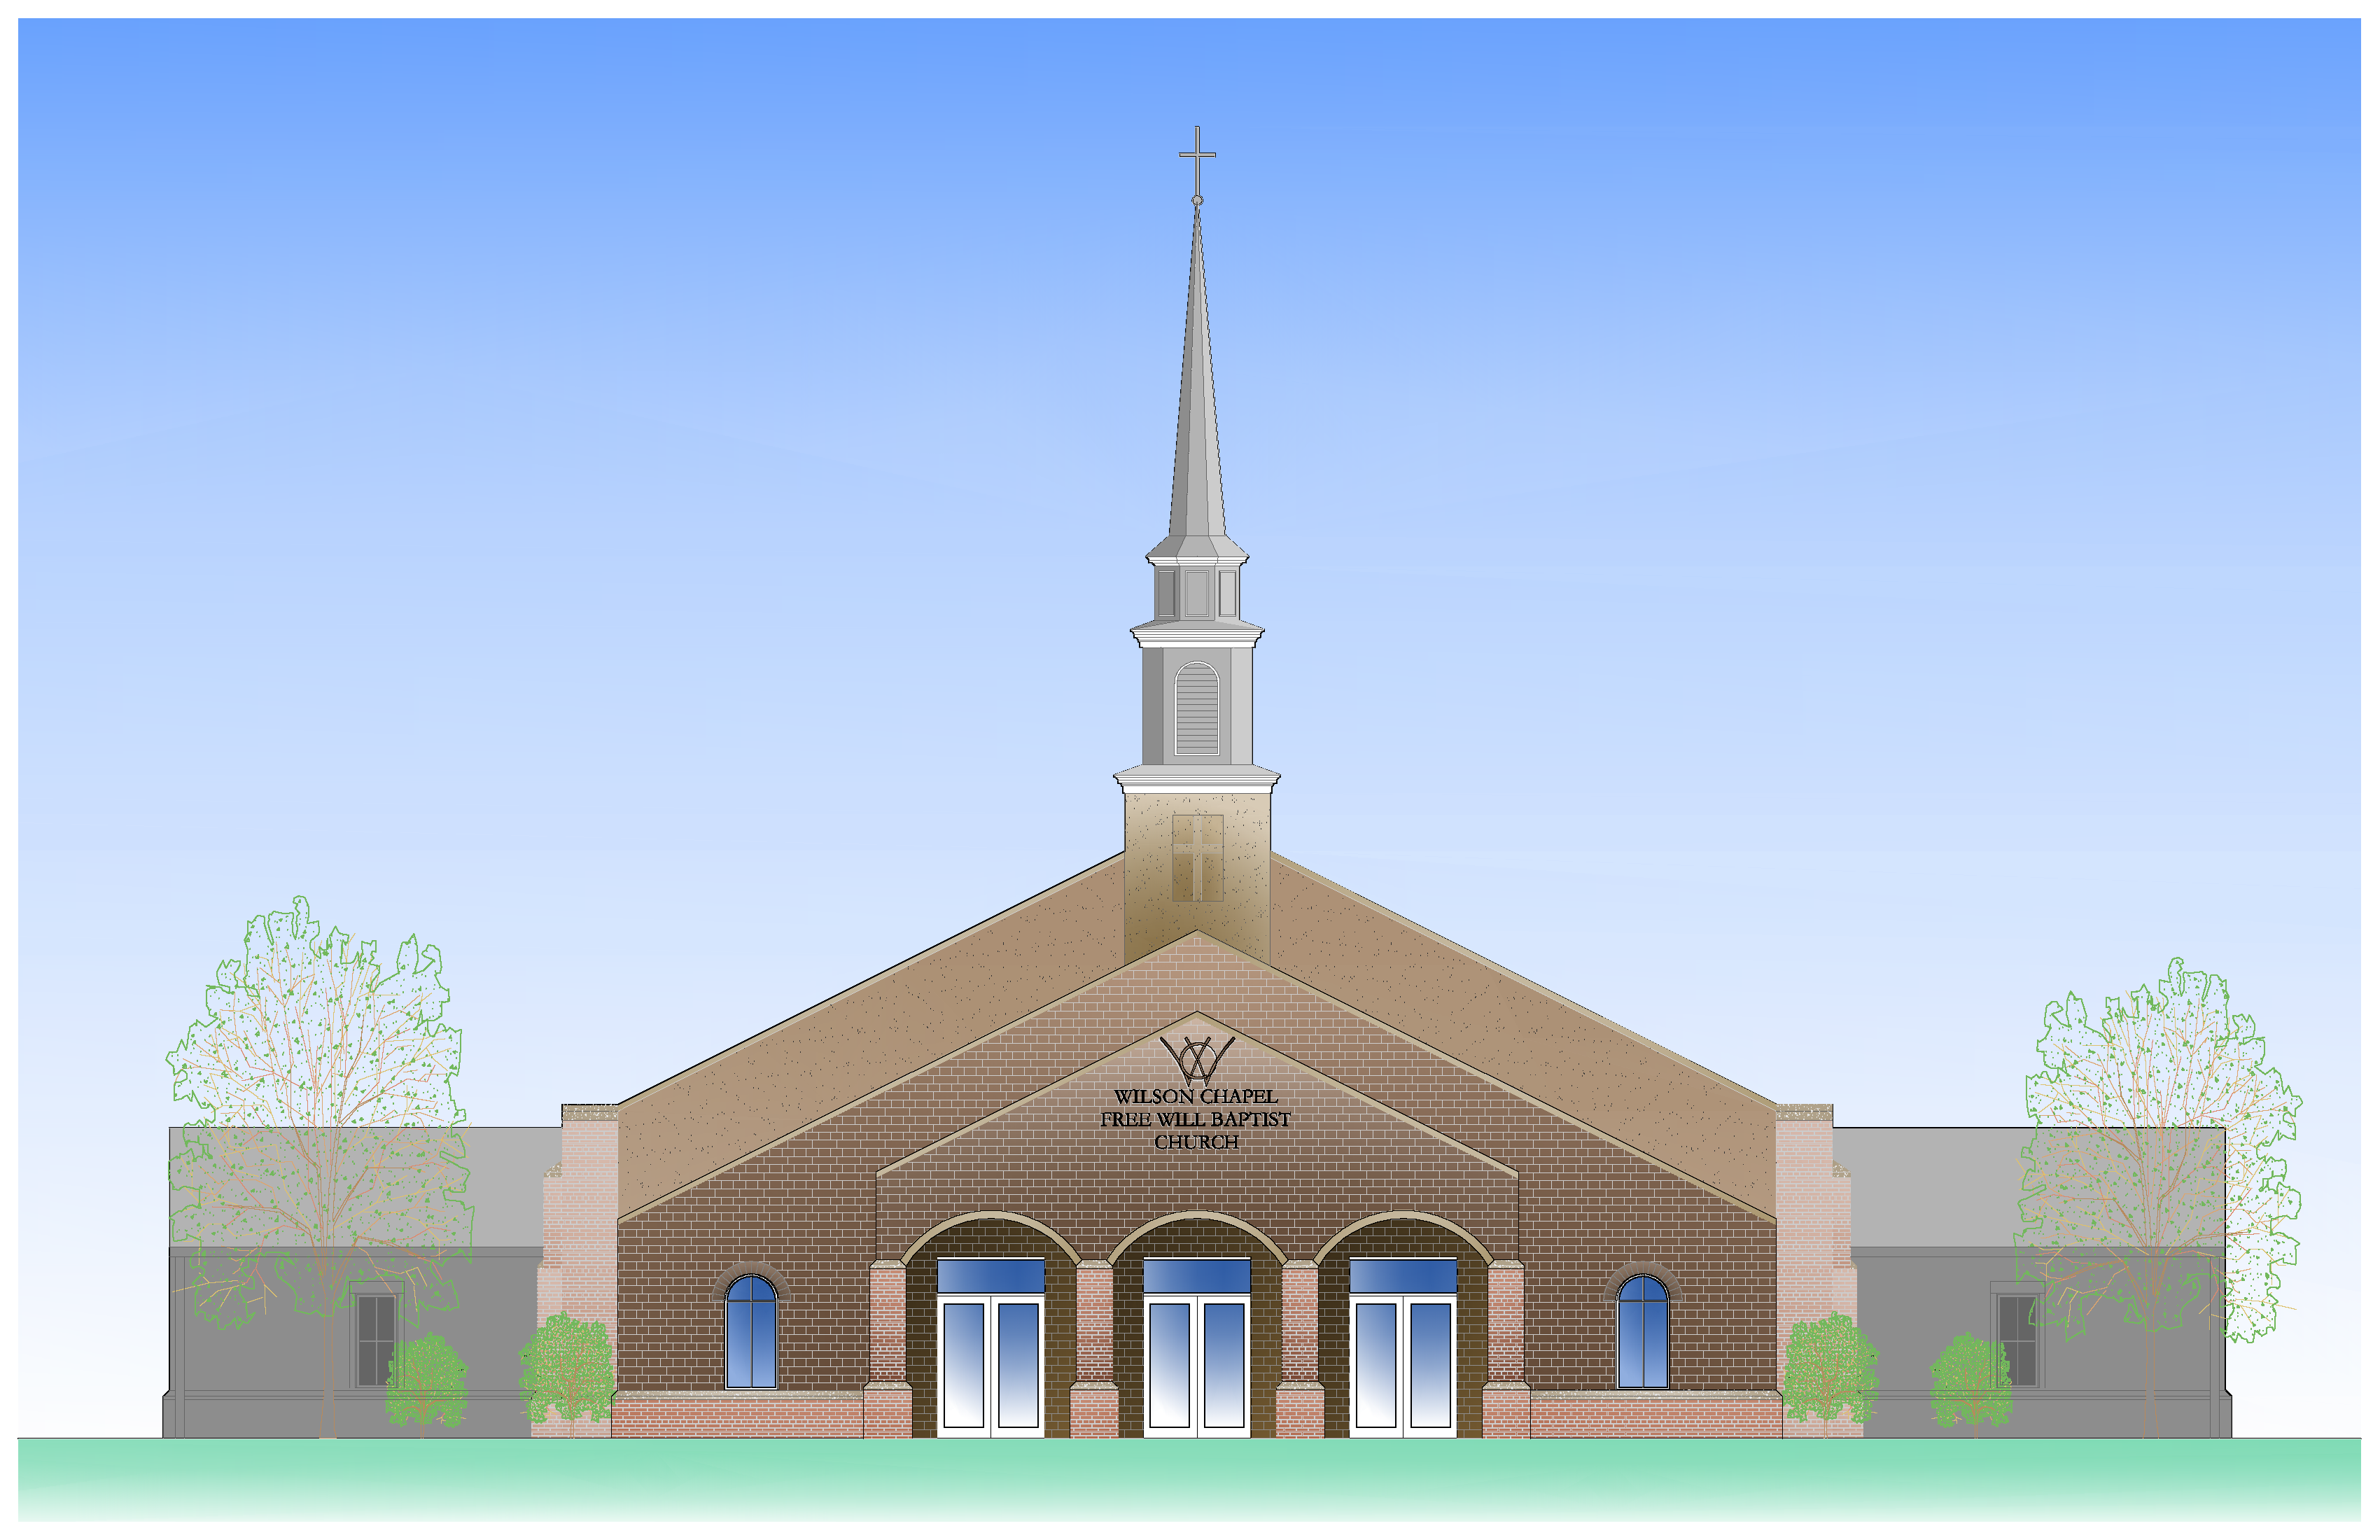 Contemporary church building designs joy studio design for Church building designs